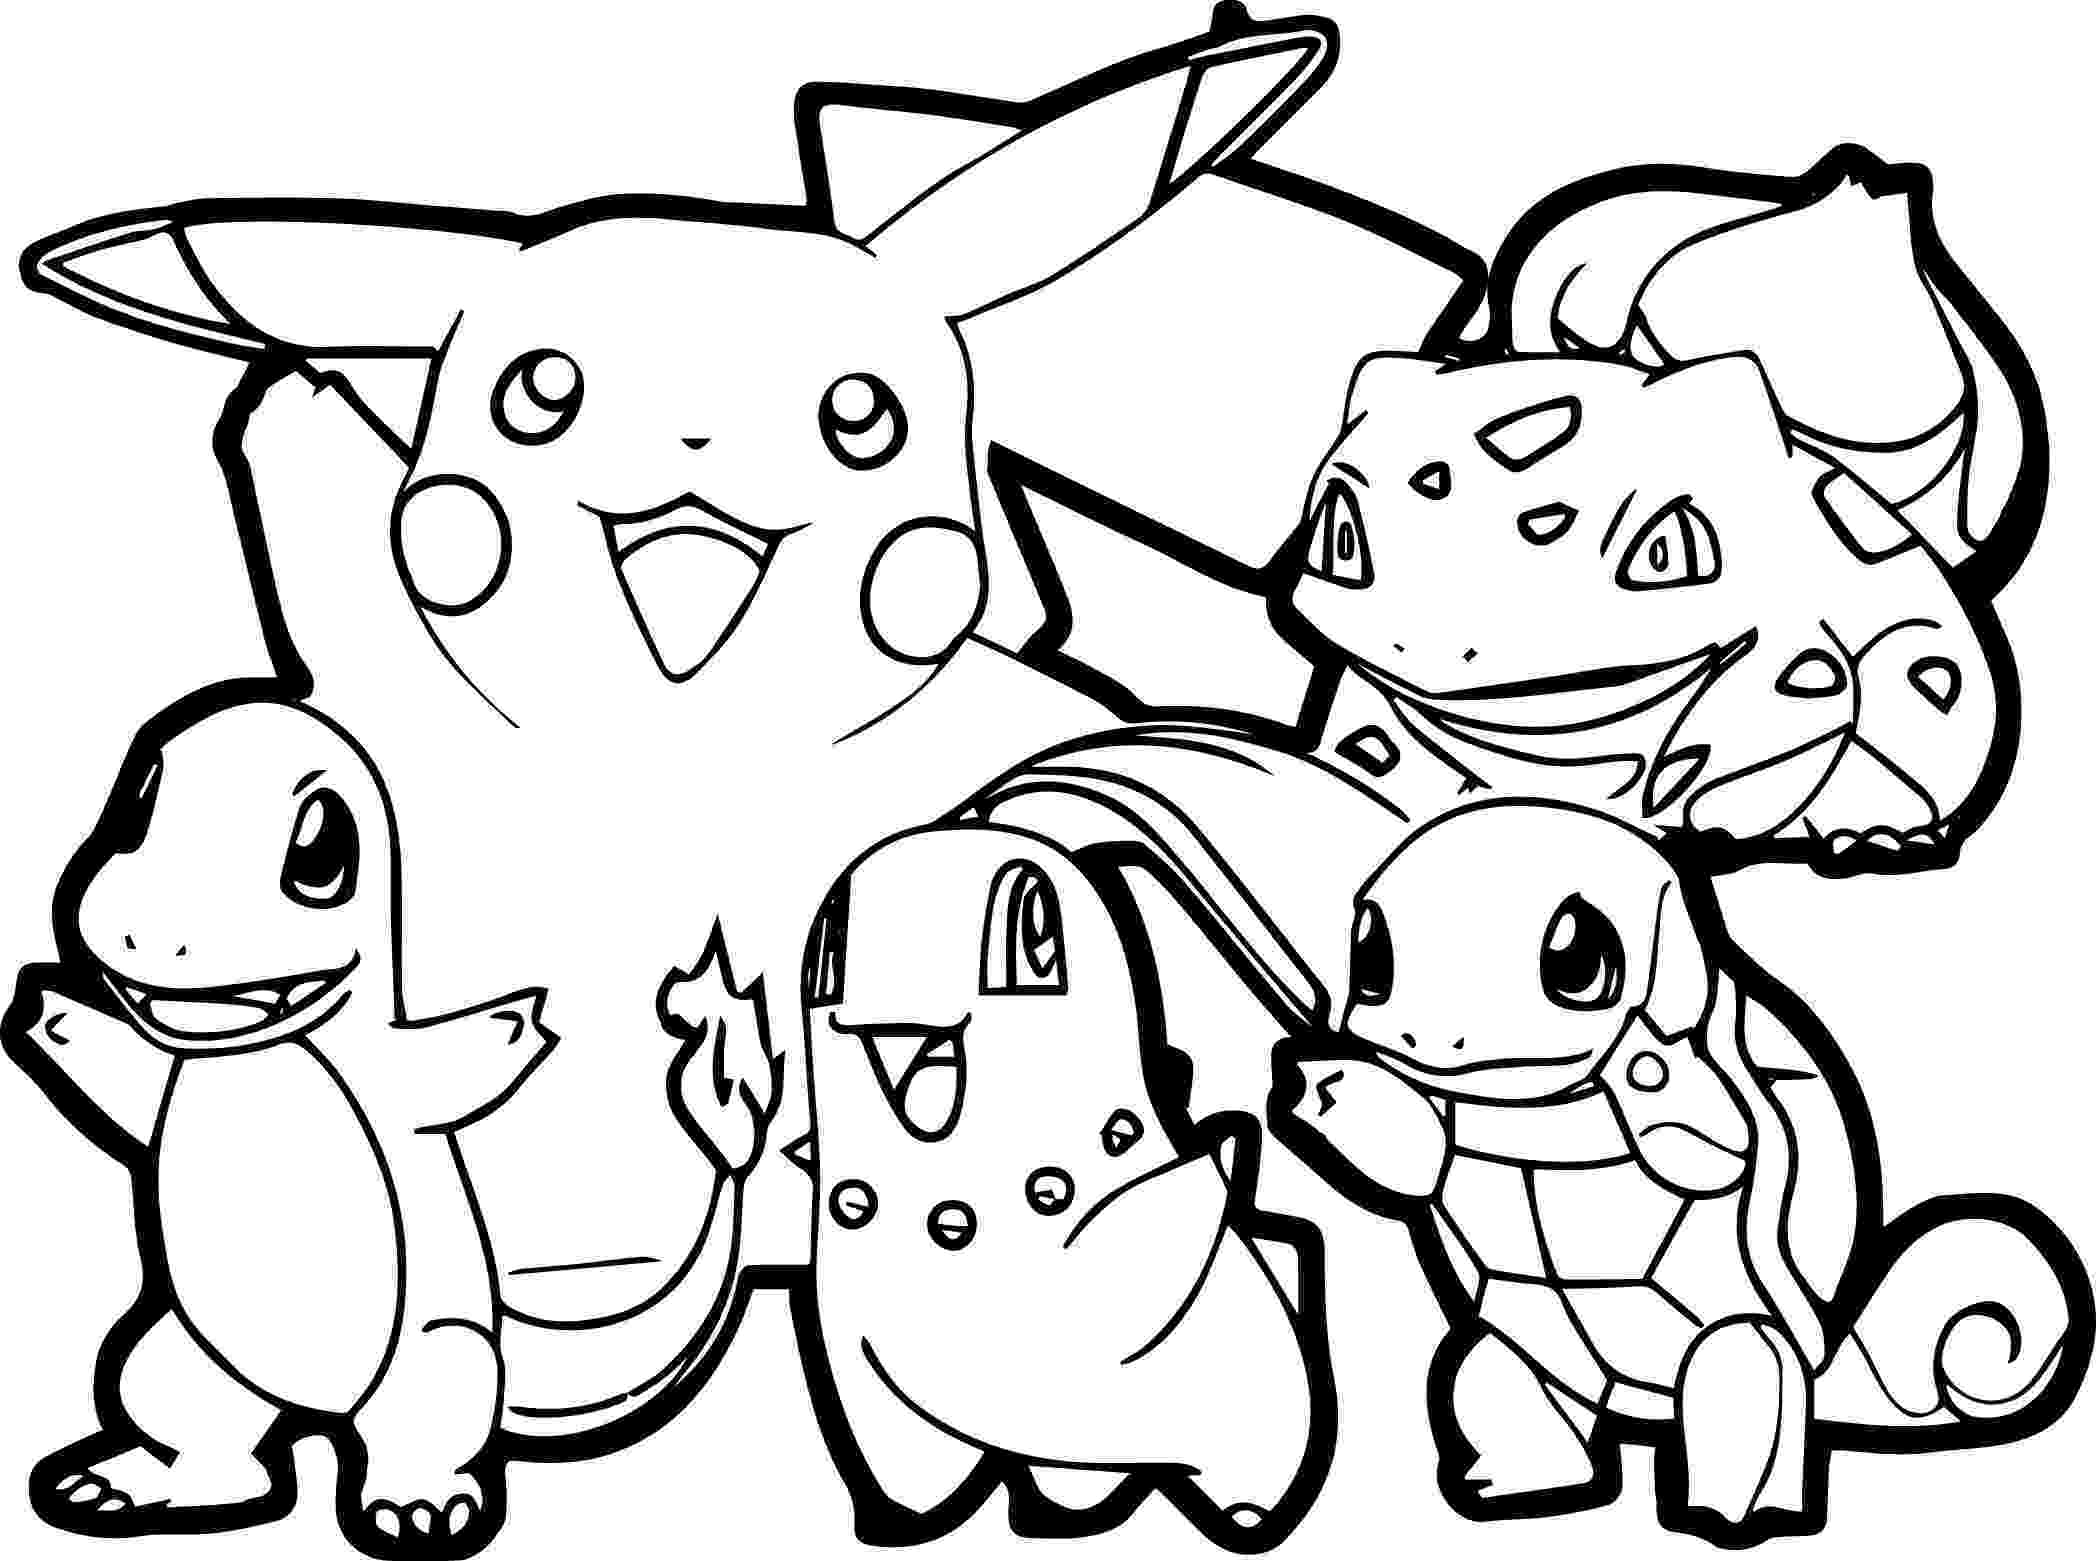 pokmon coloring pages all pokemon coloring pages download and print for free coloring pokmon pages